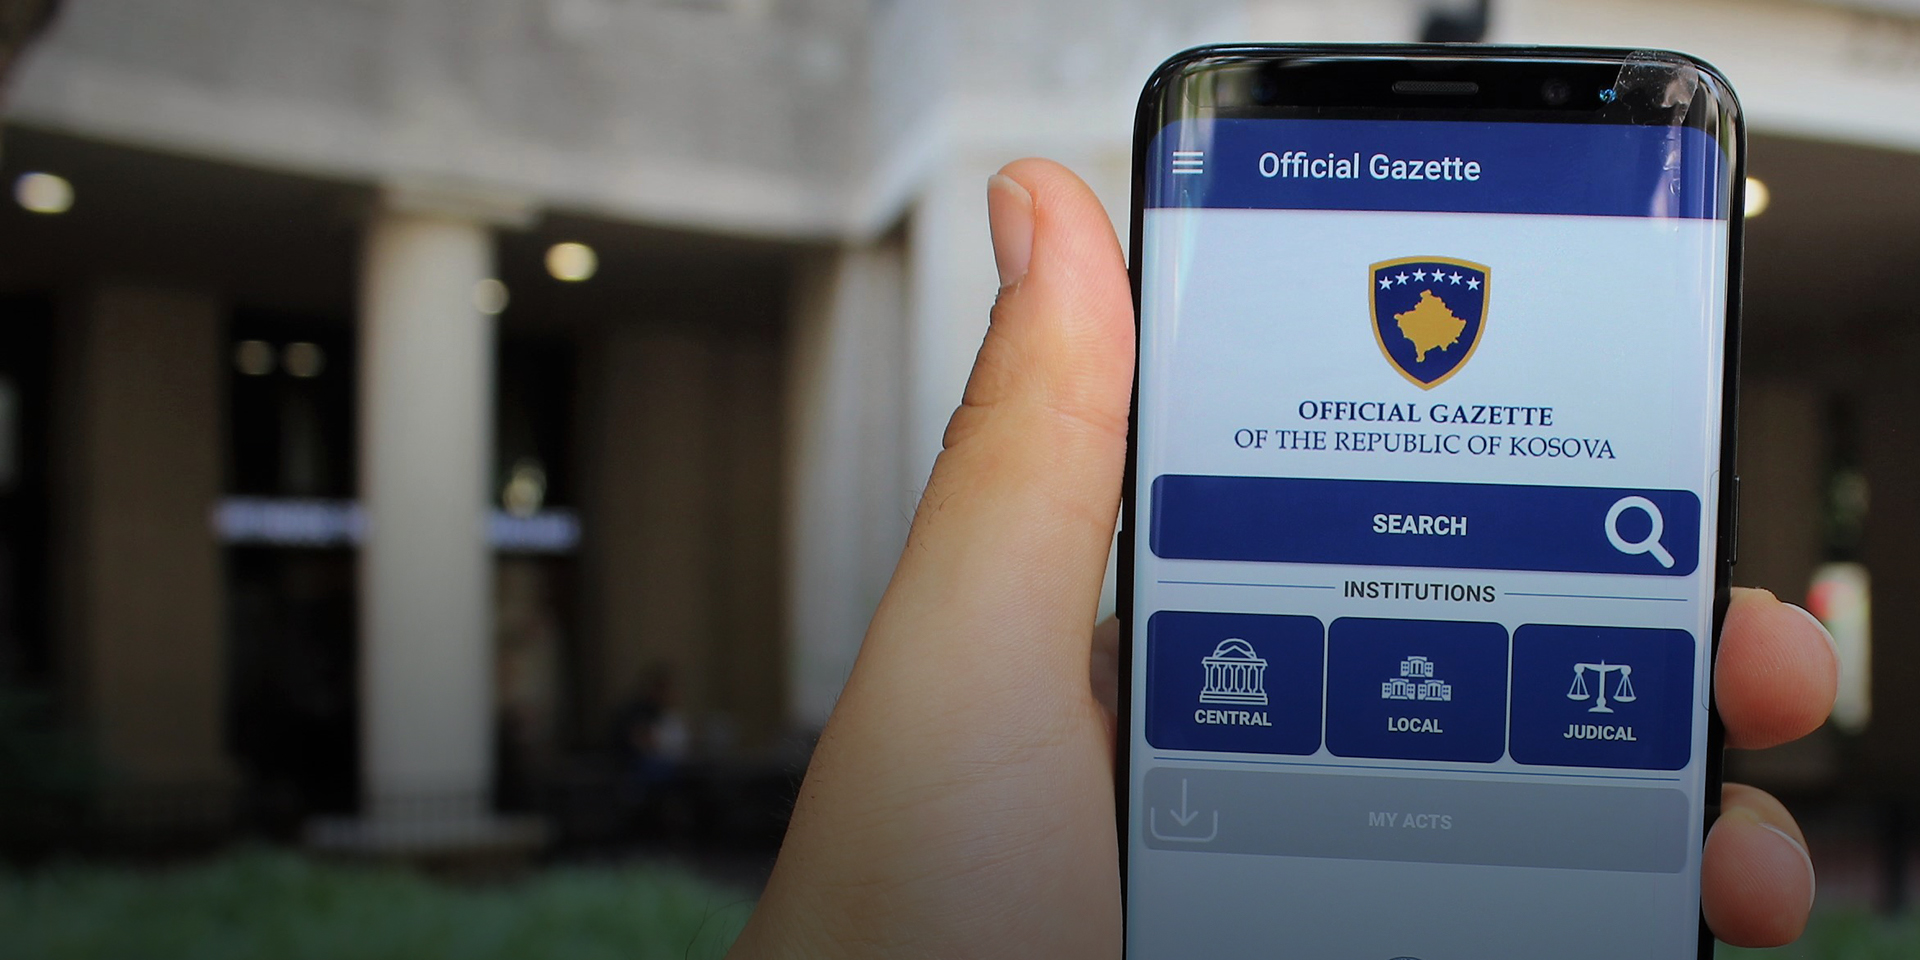 A phone displays the Official Gazette of Kosovo mobile app